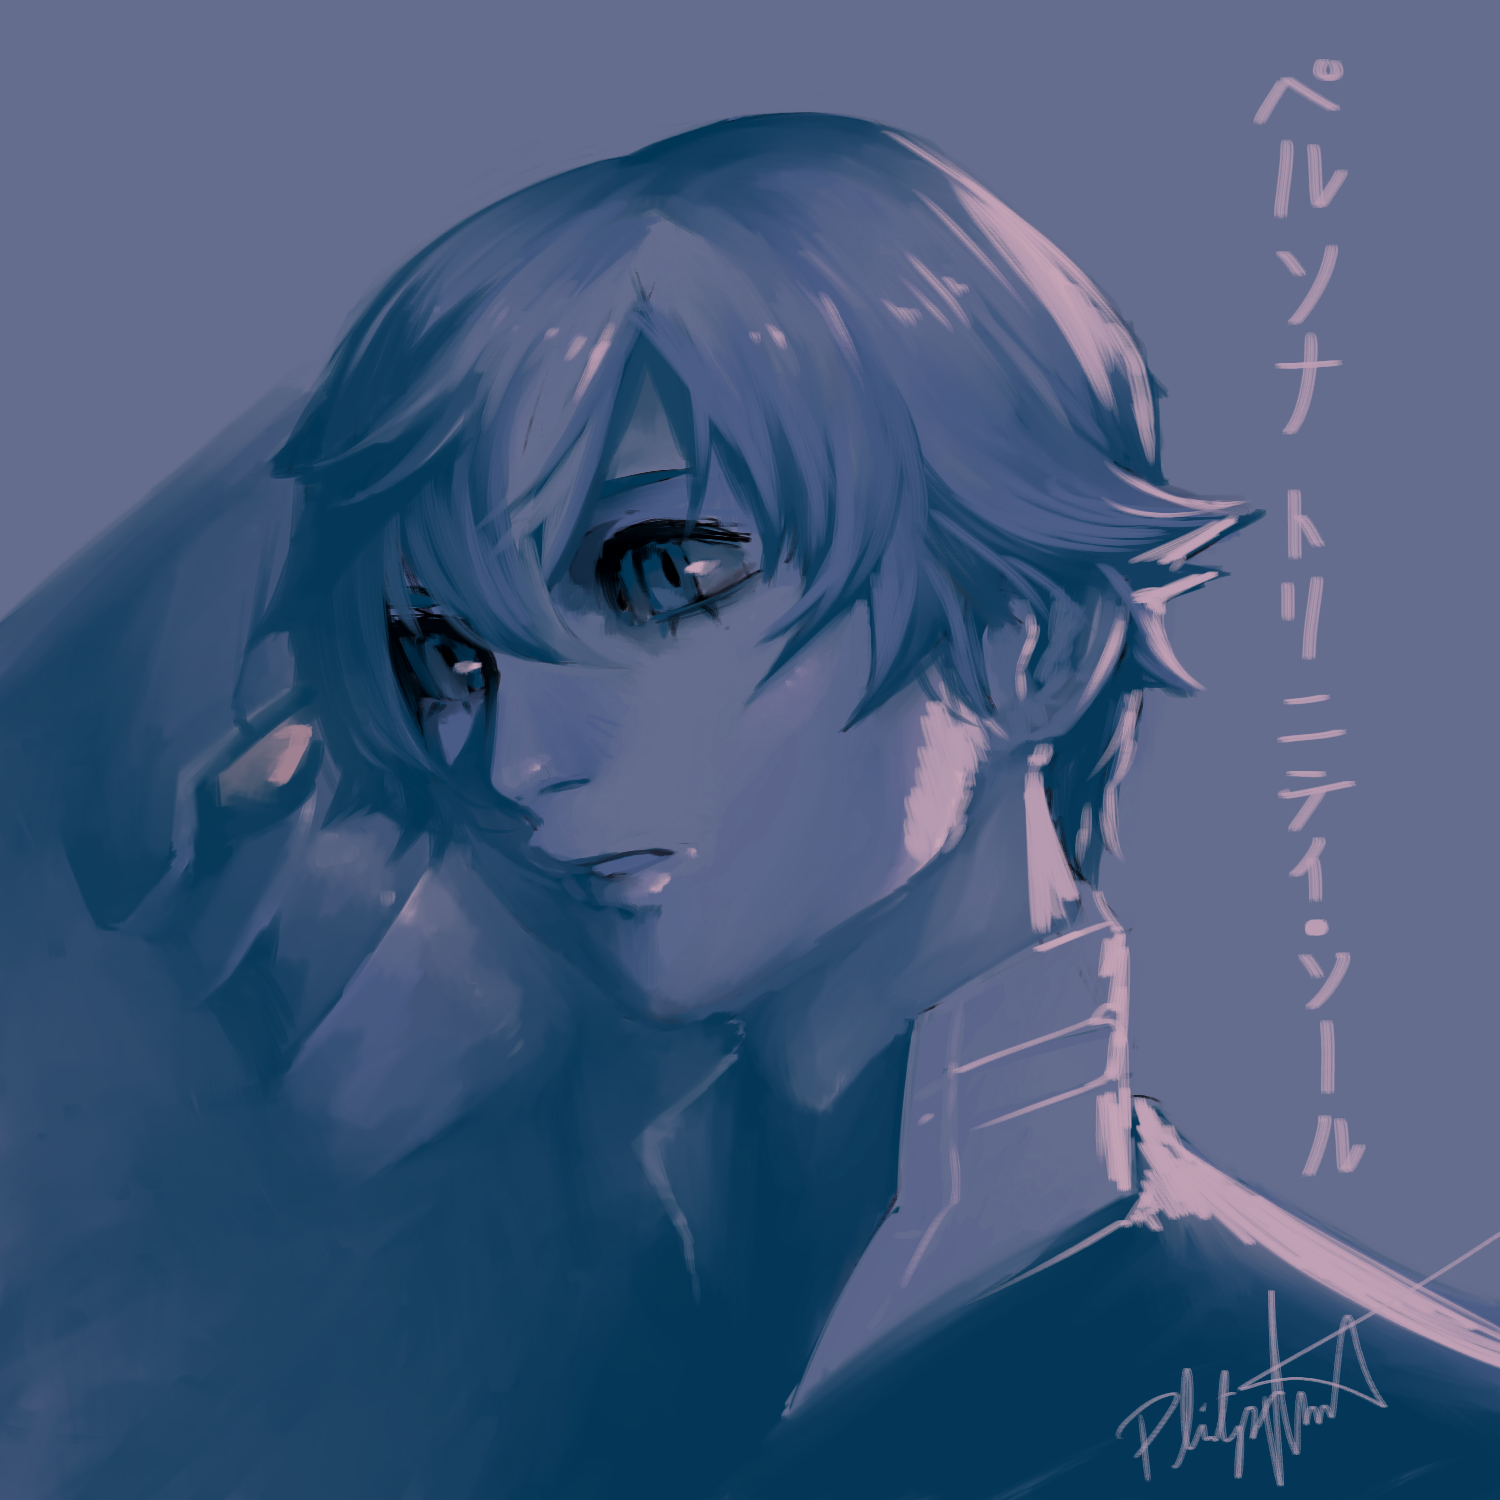 First time using single layer drawing + limited palette. Shin and his persona Abel